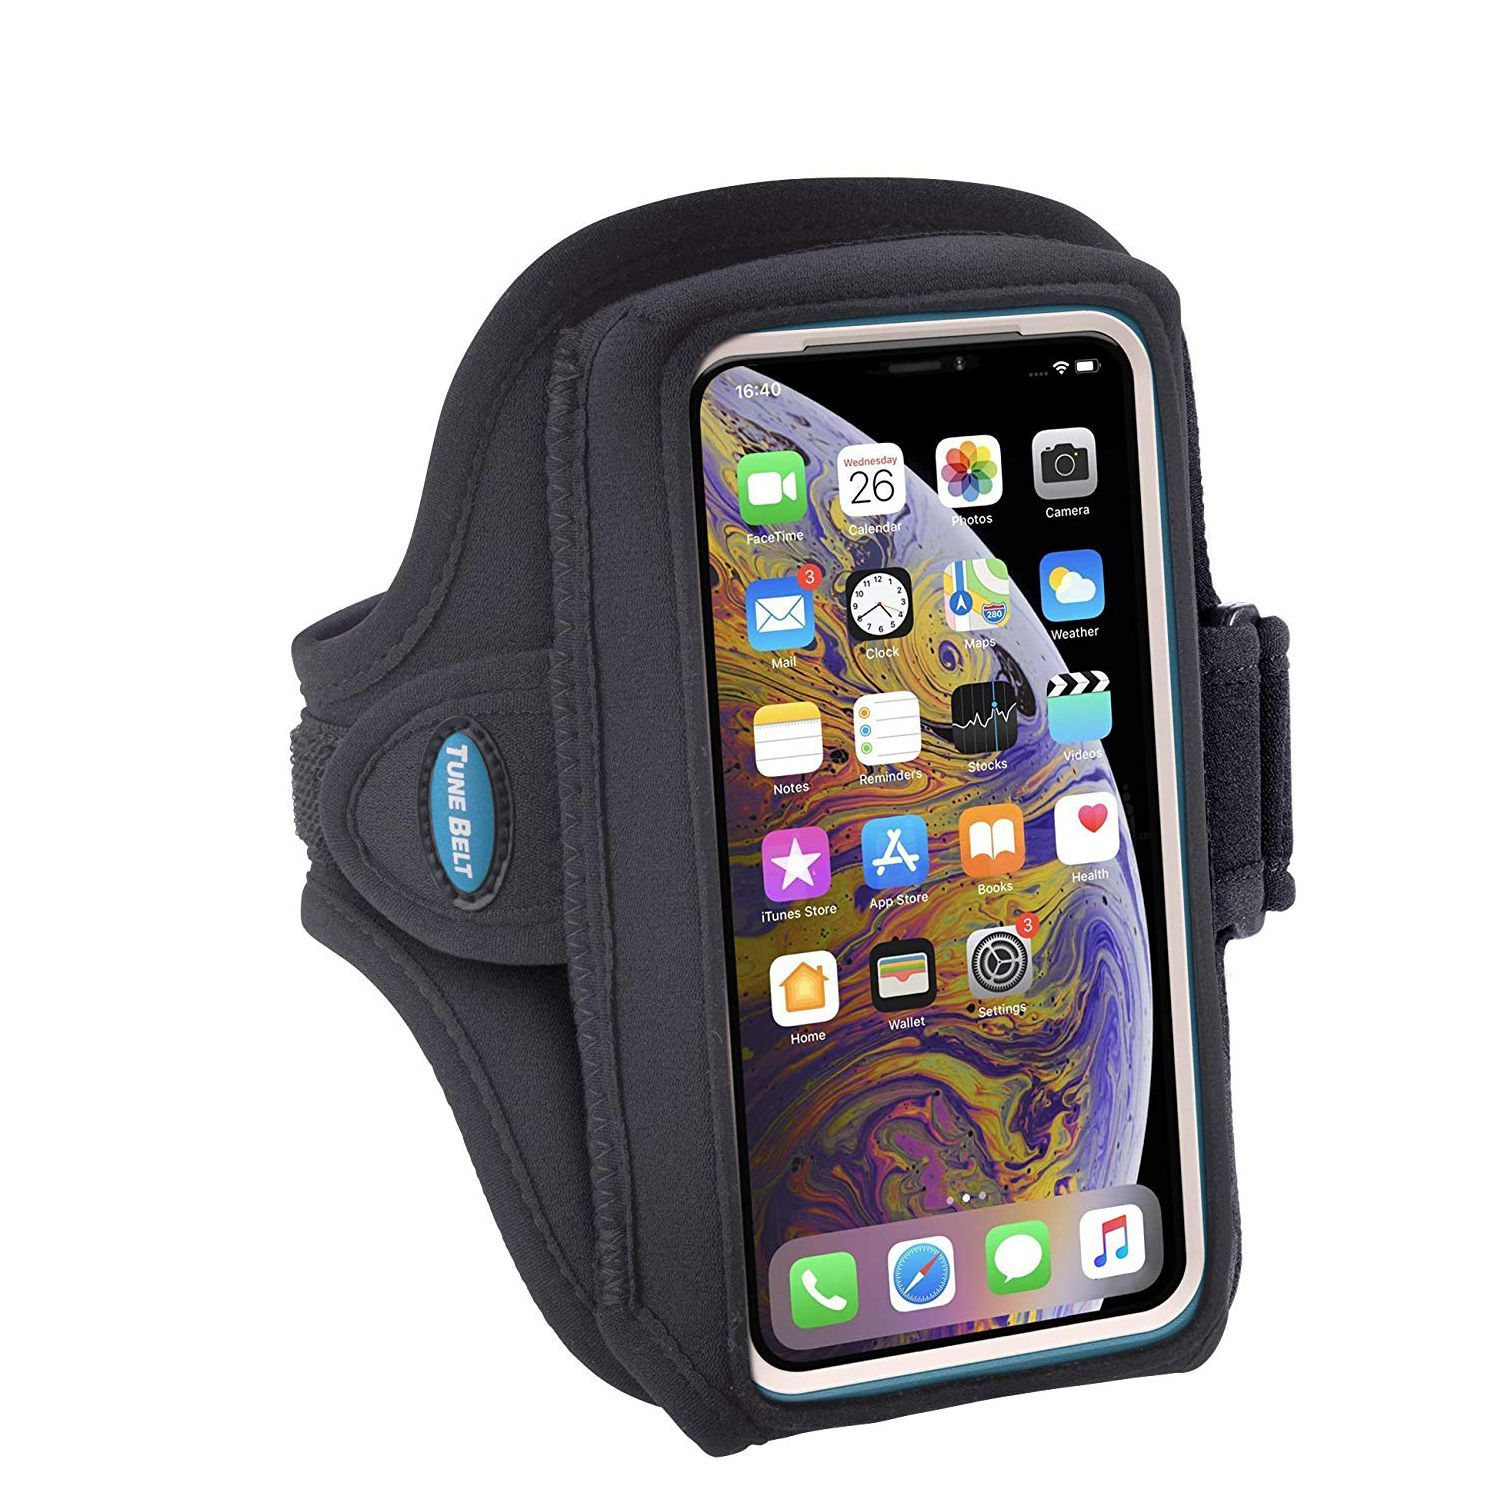 5ba4758f72481c The 7 Best Phone Armbands, According to Experts - Best Running Phone Holder  2019